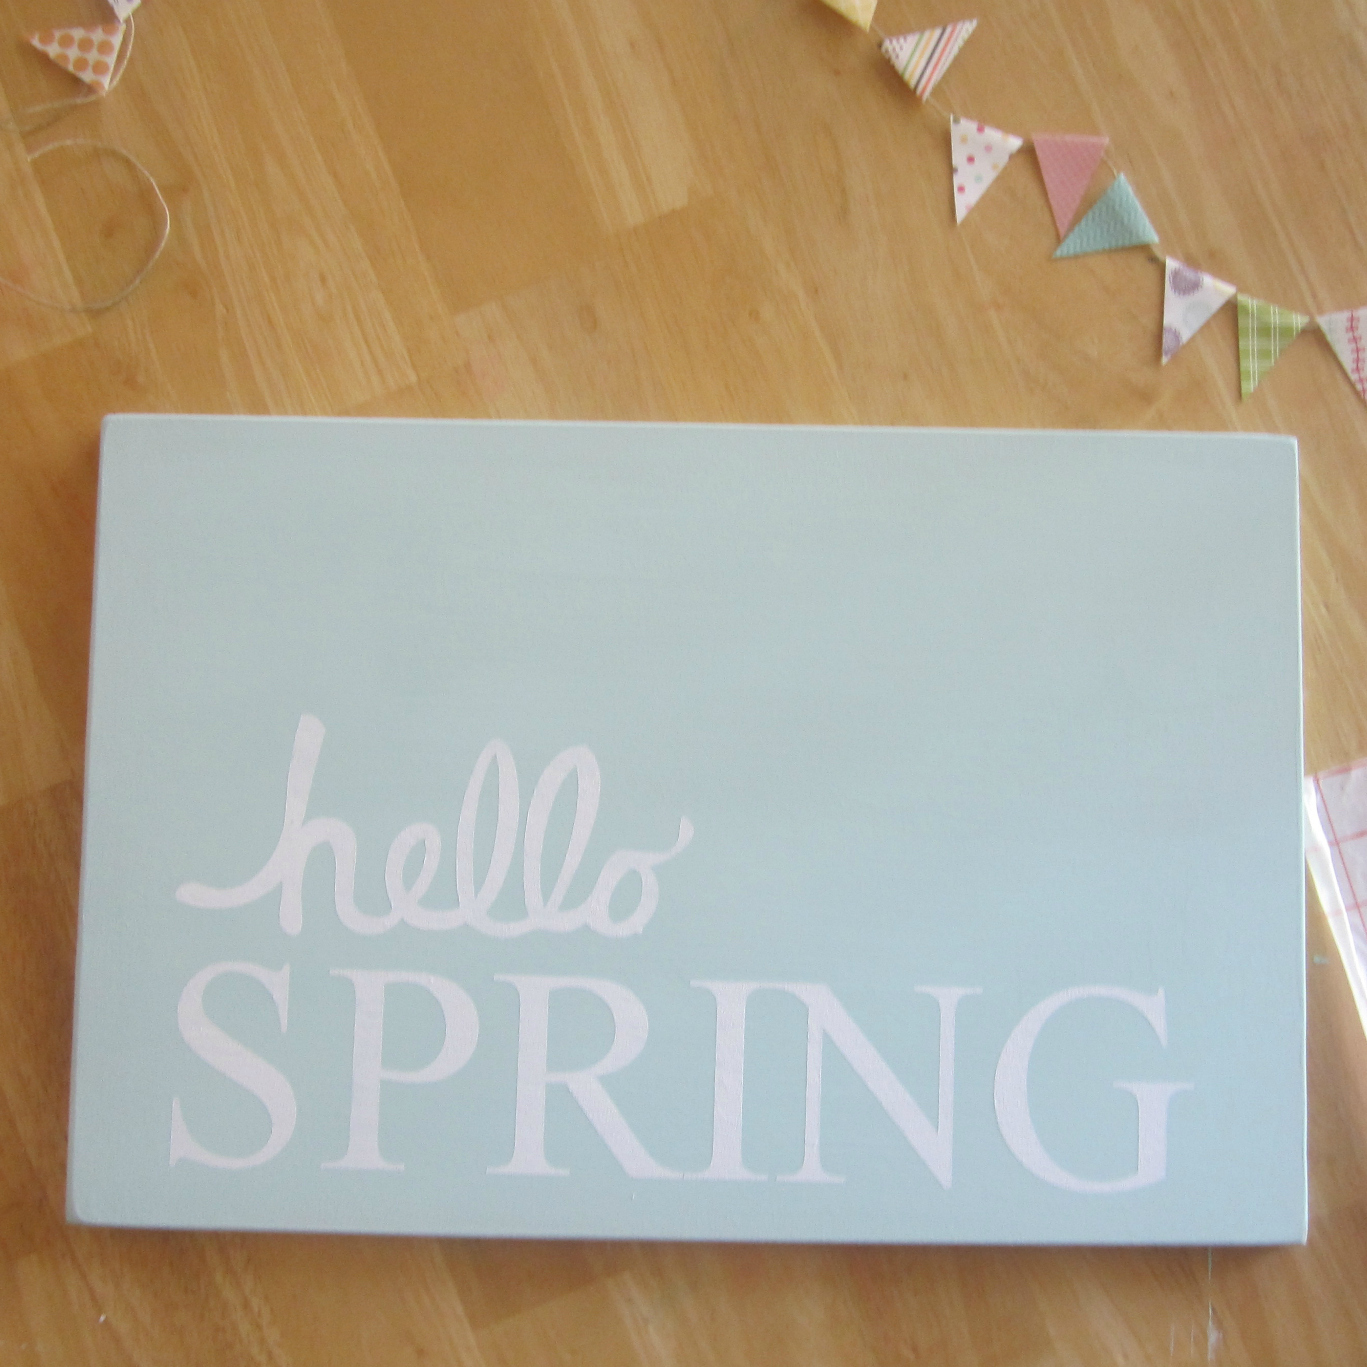 Quot Hello Spring Quot Bannered Wooden Sign Project By Decoart